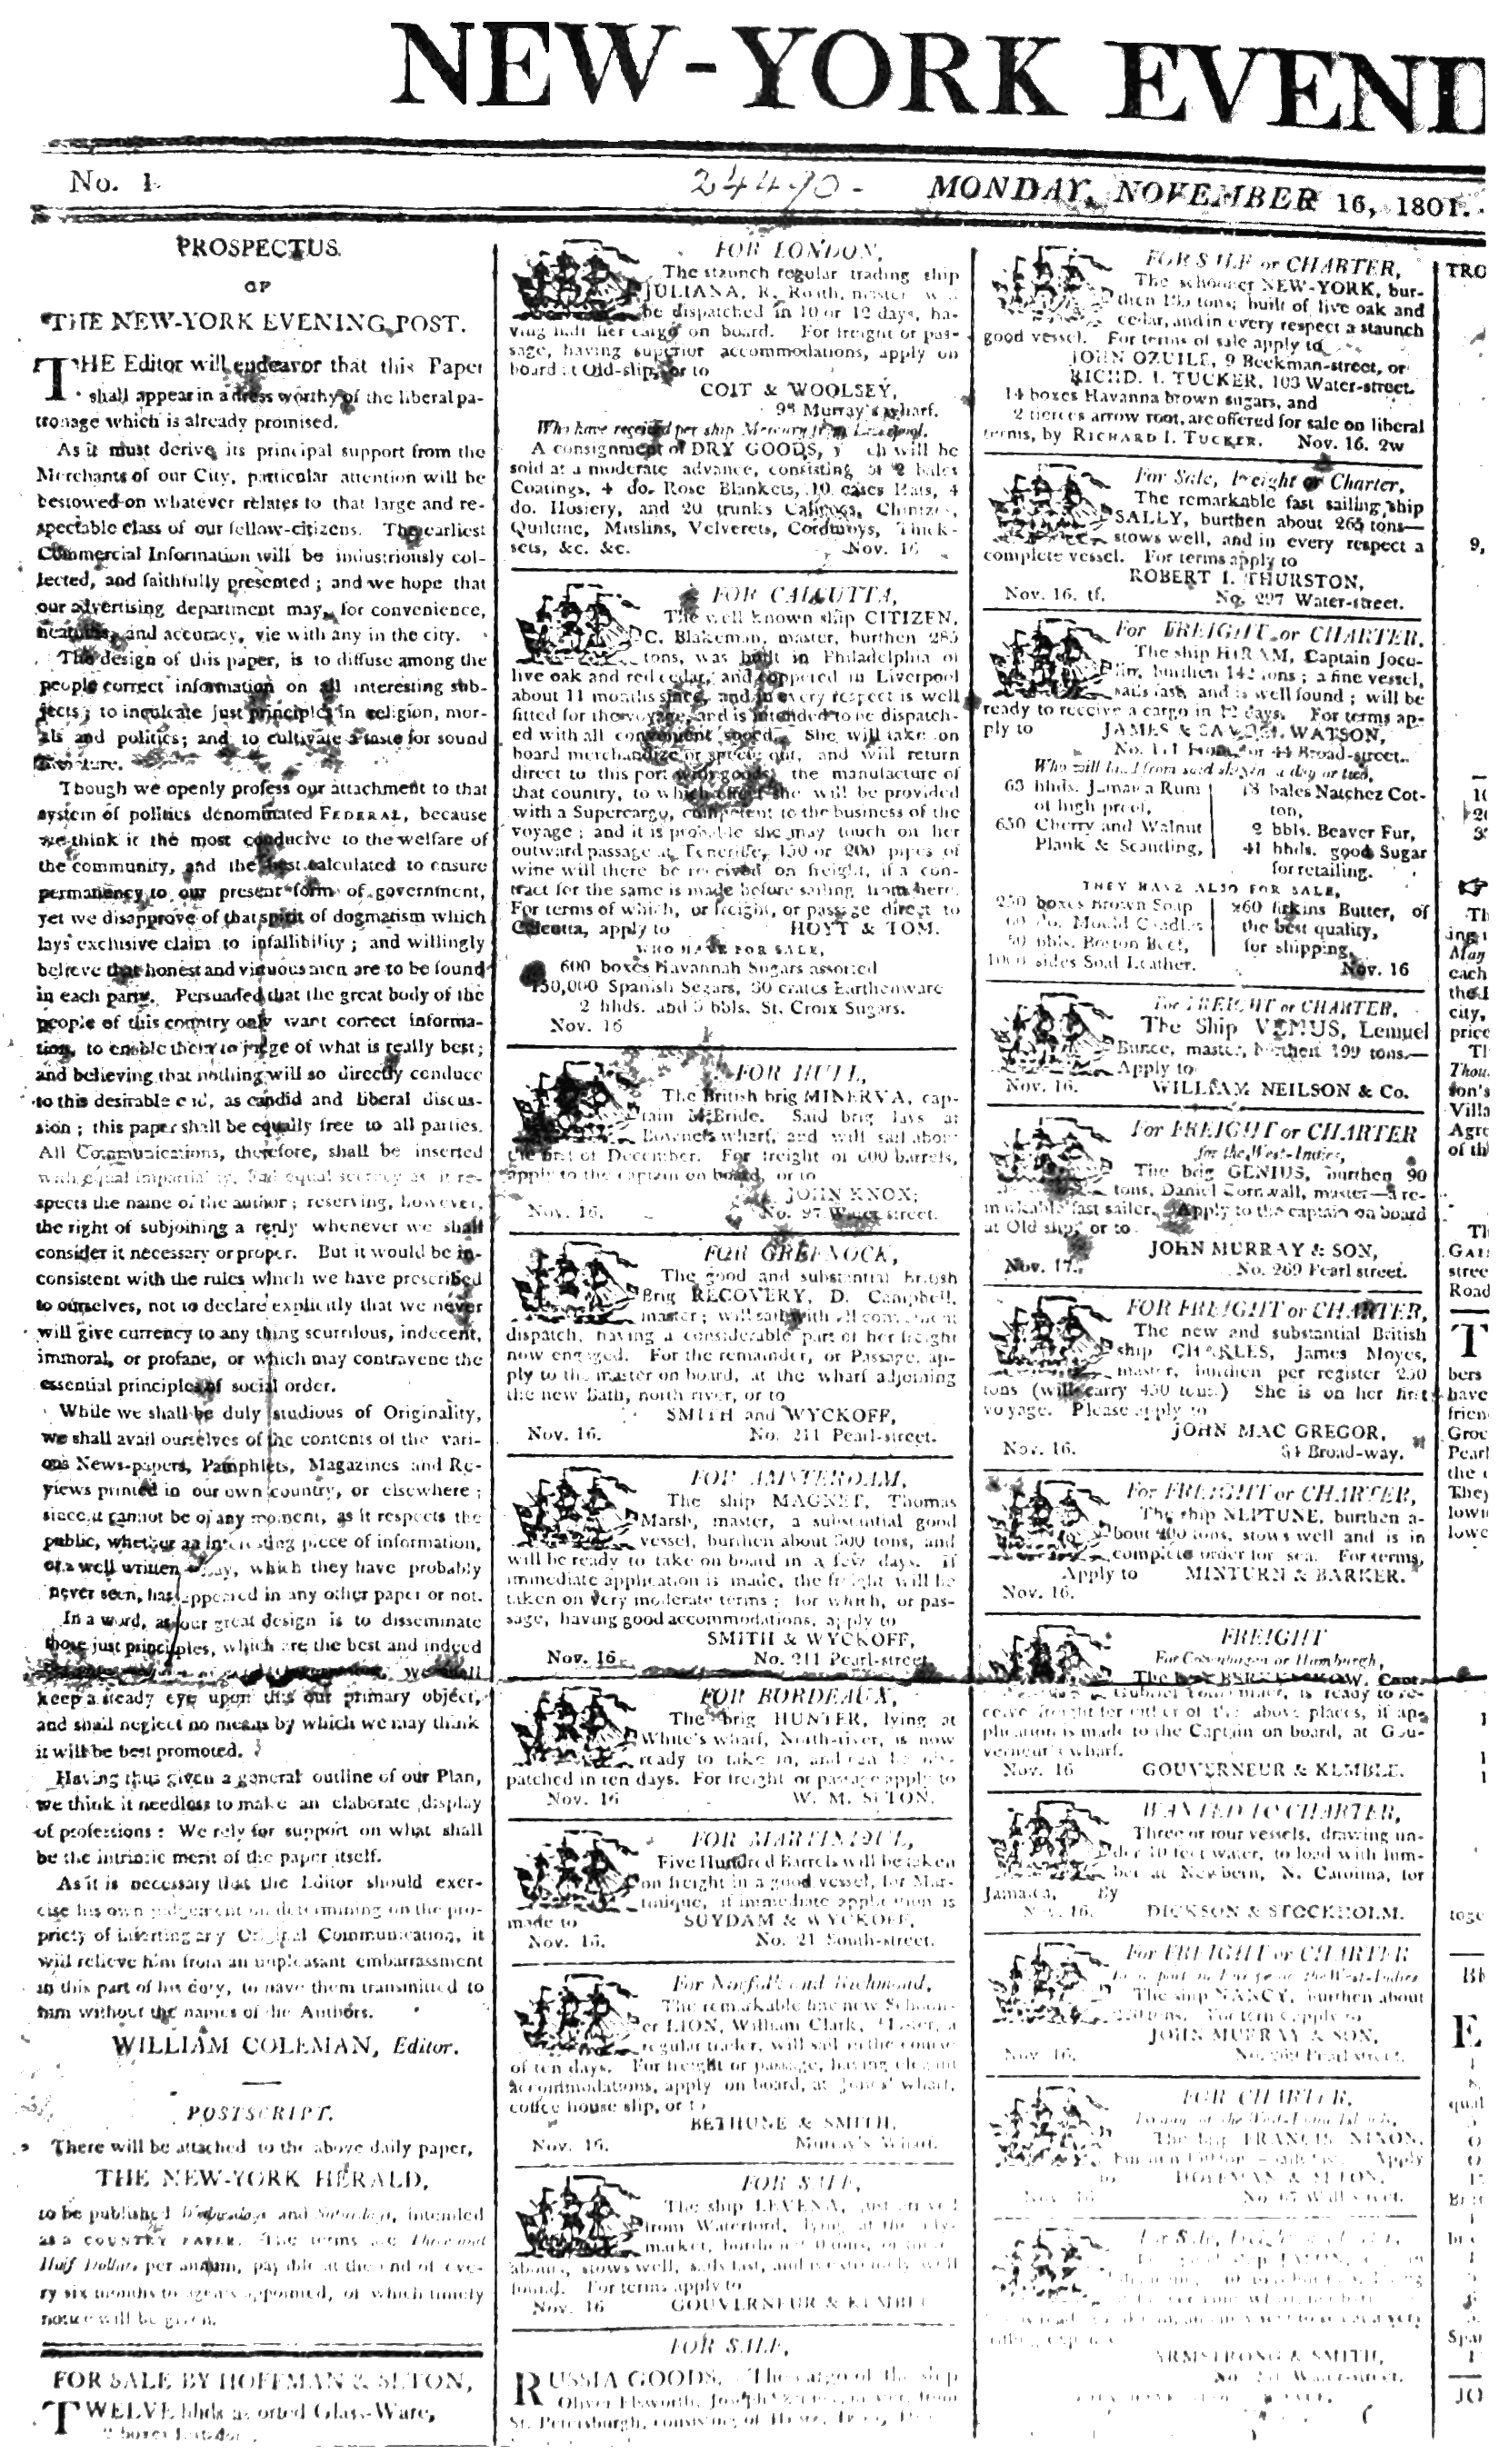 File:PSM V56 D0209 New york evening post 1801.png - Wikimedia Commons